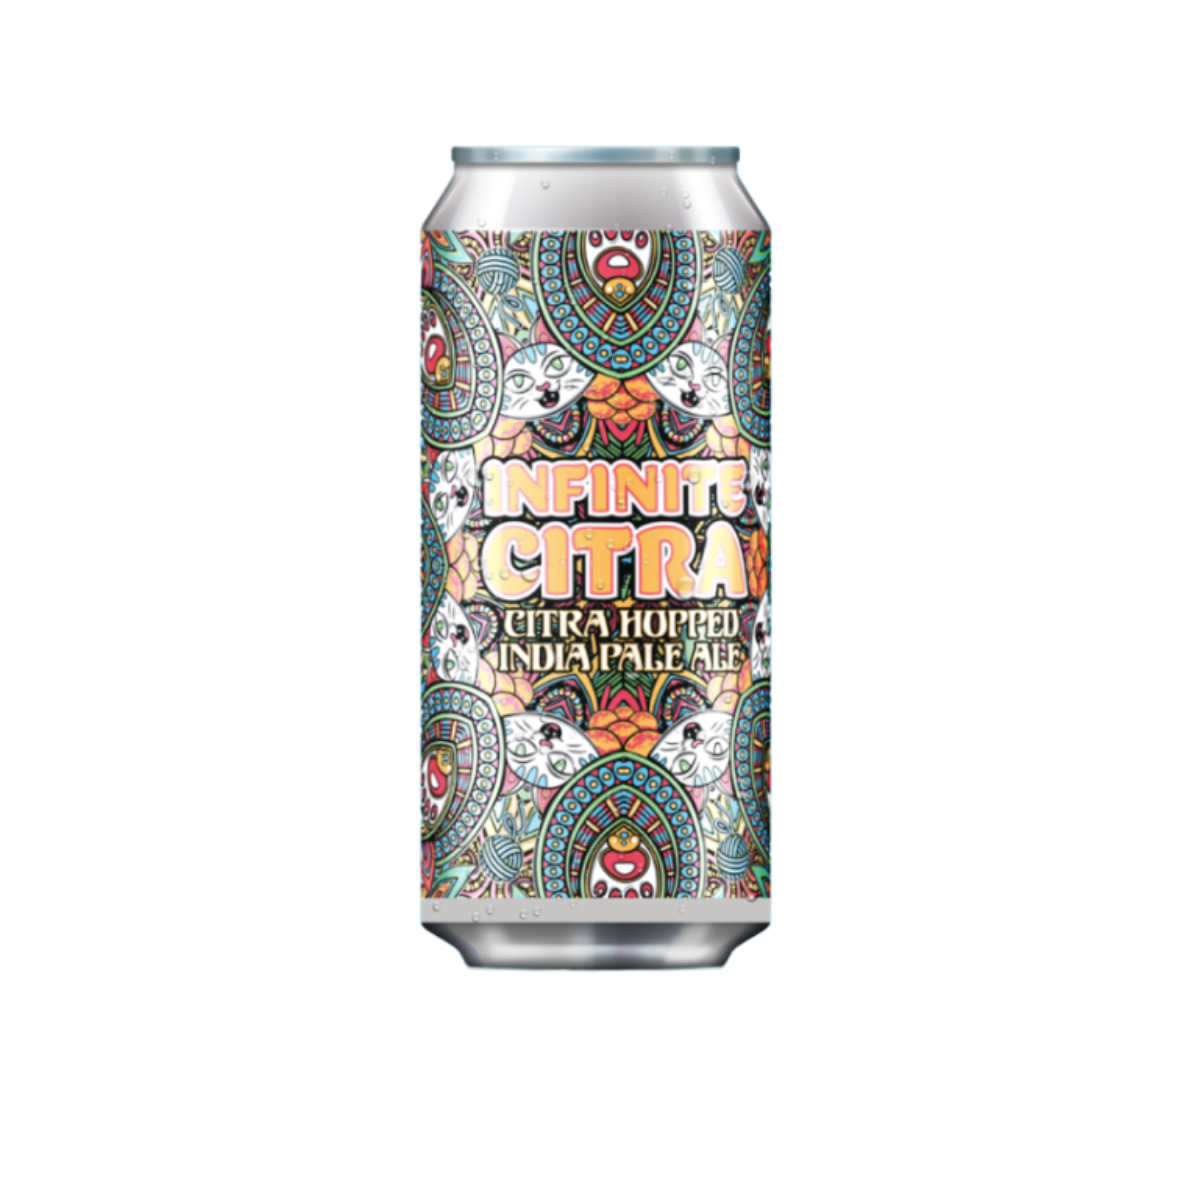 Pipeworks Brewing Co. Infinite Citra IPA 4PK 16oz Cans